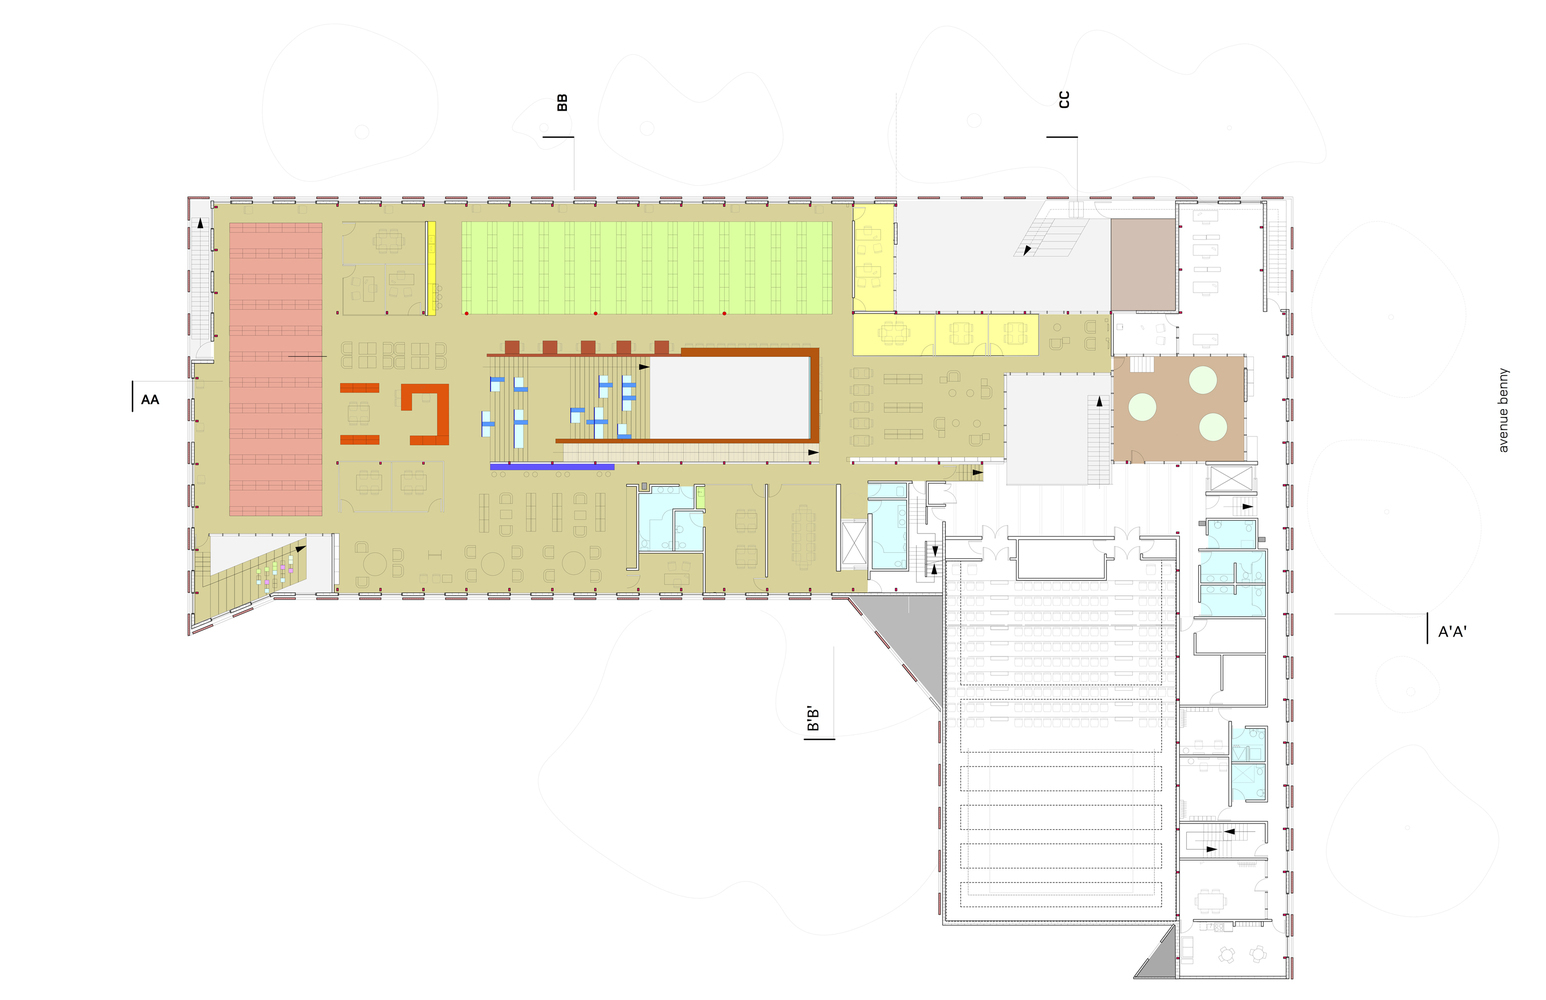 Atelier 50 Gallery Of Cultural Centers 50 Examples In Plan And Section 140